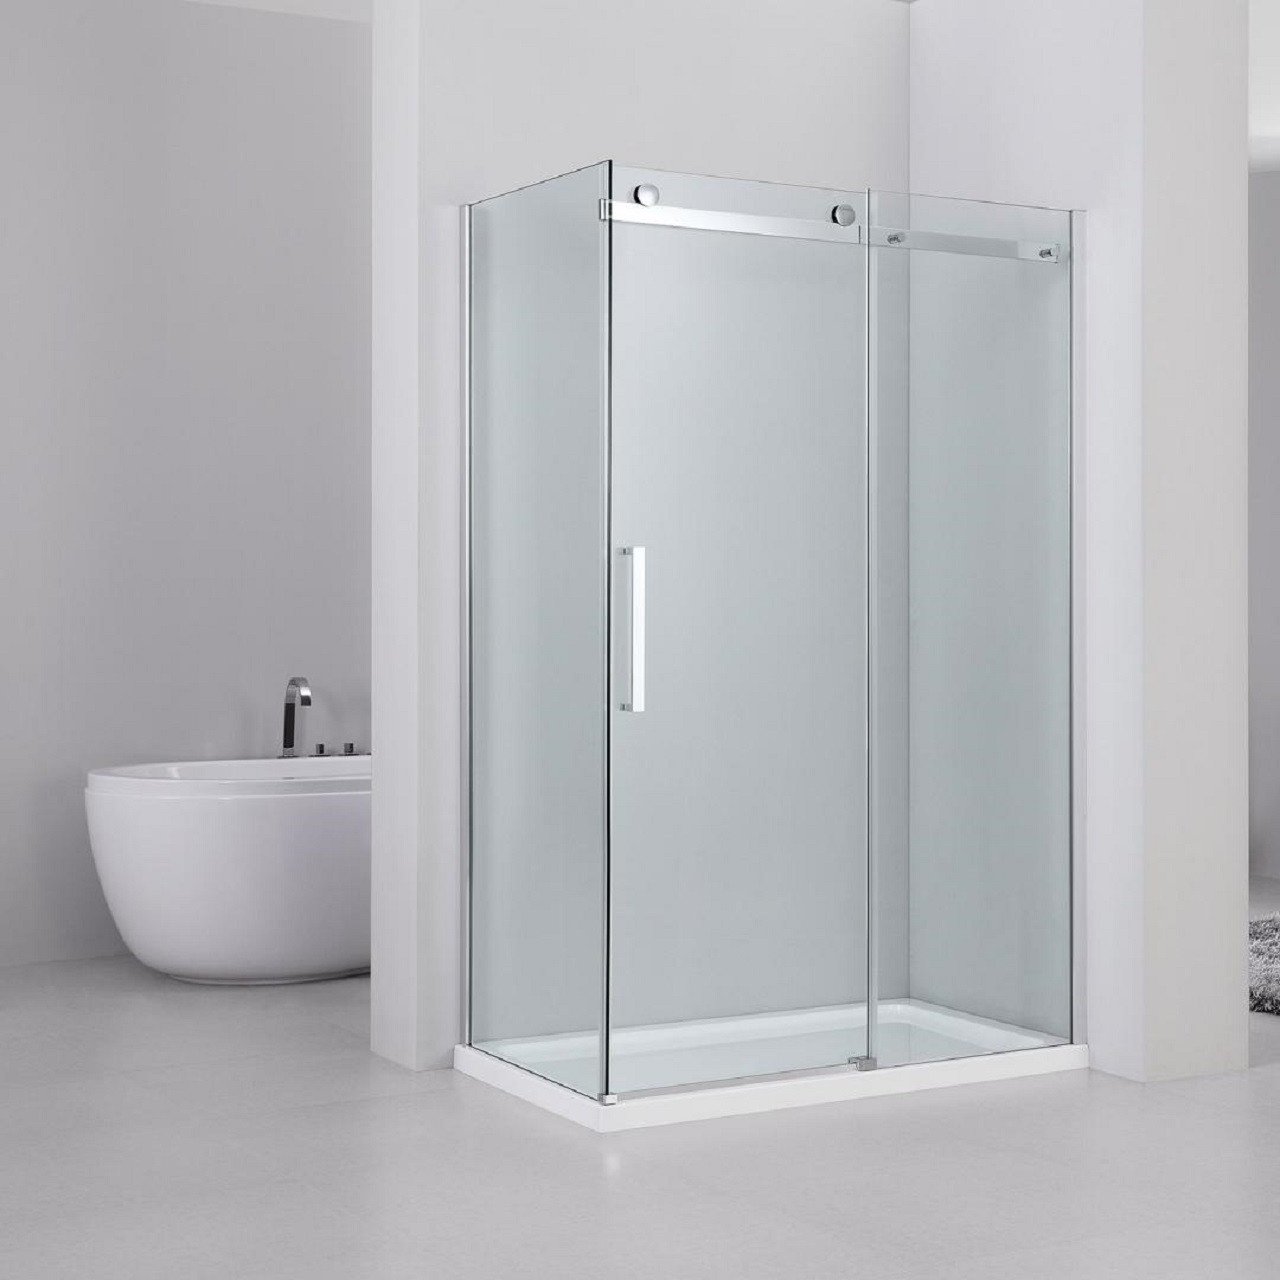 Series 10 Roller 1400mm x 700mm Sliding Door Shower Enclosure £366.58